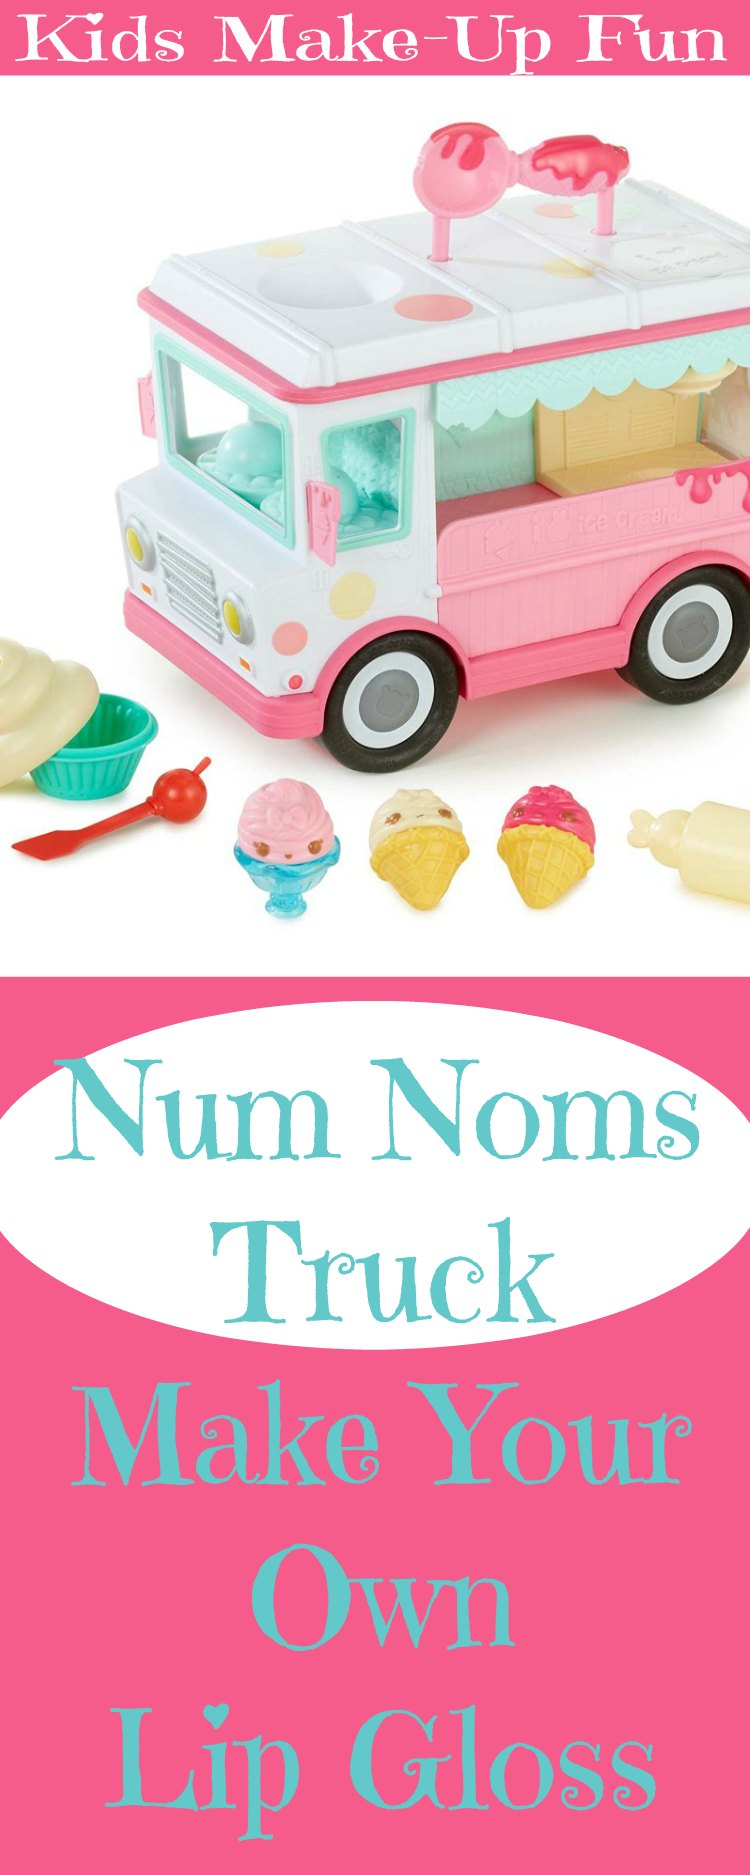 Num Noms Truck Lip Gloss Kit